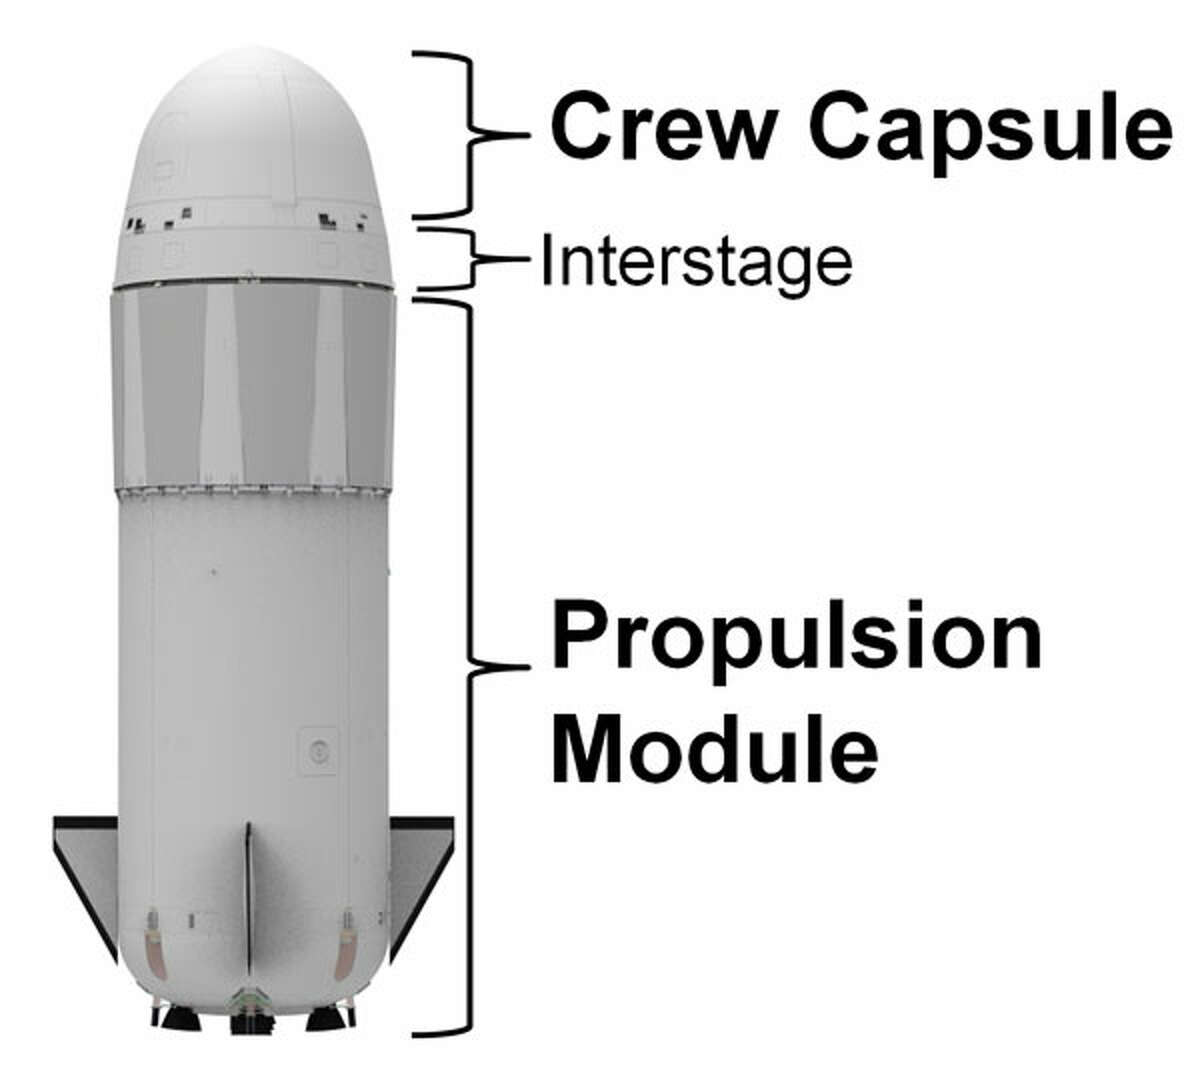 A rendering of Blue Origin's New Shepard Vehicle, consisting of a crew capsule designed to carry three or more astronauts on suborbital trips and a propulsion module. The propulsion module would return to earth for a powered vertical landing, while the crew capsule would use parachutes.